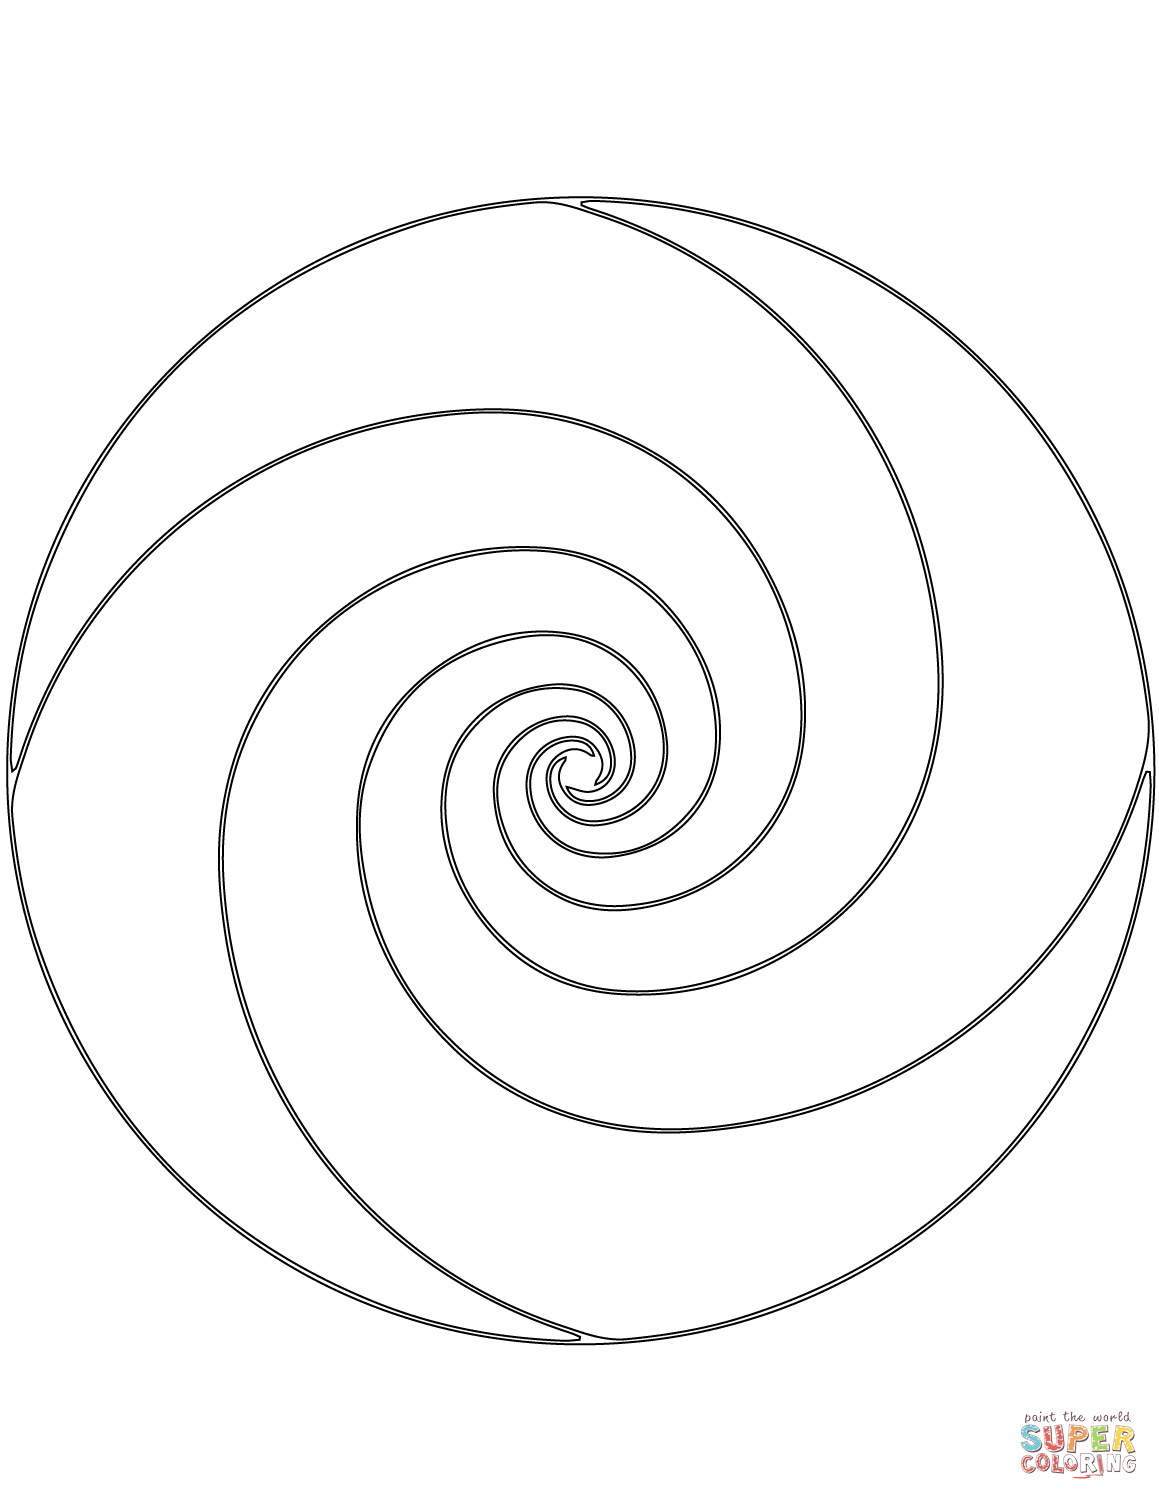 spiral pictures to color spiral coloring download spiral coloring for free 2019 to spiral pictures color